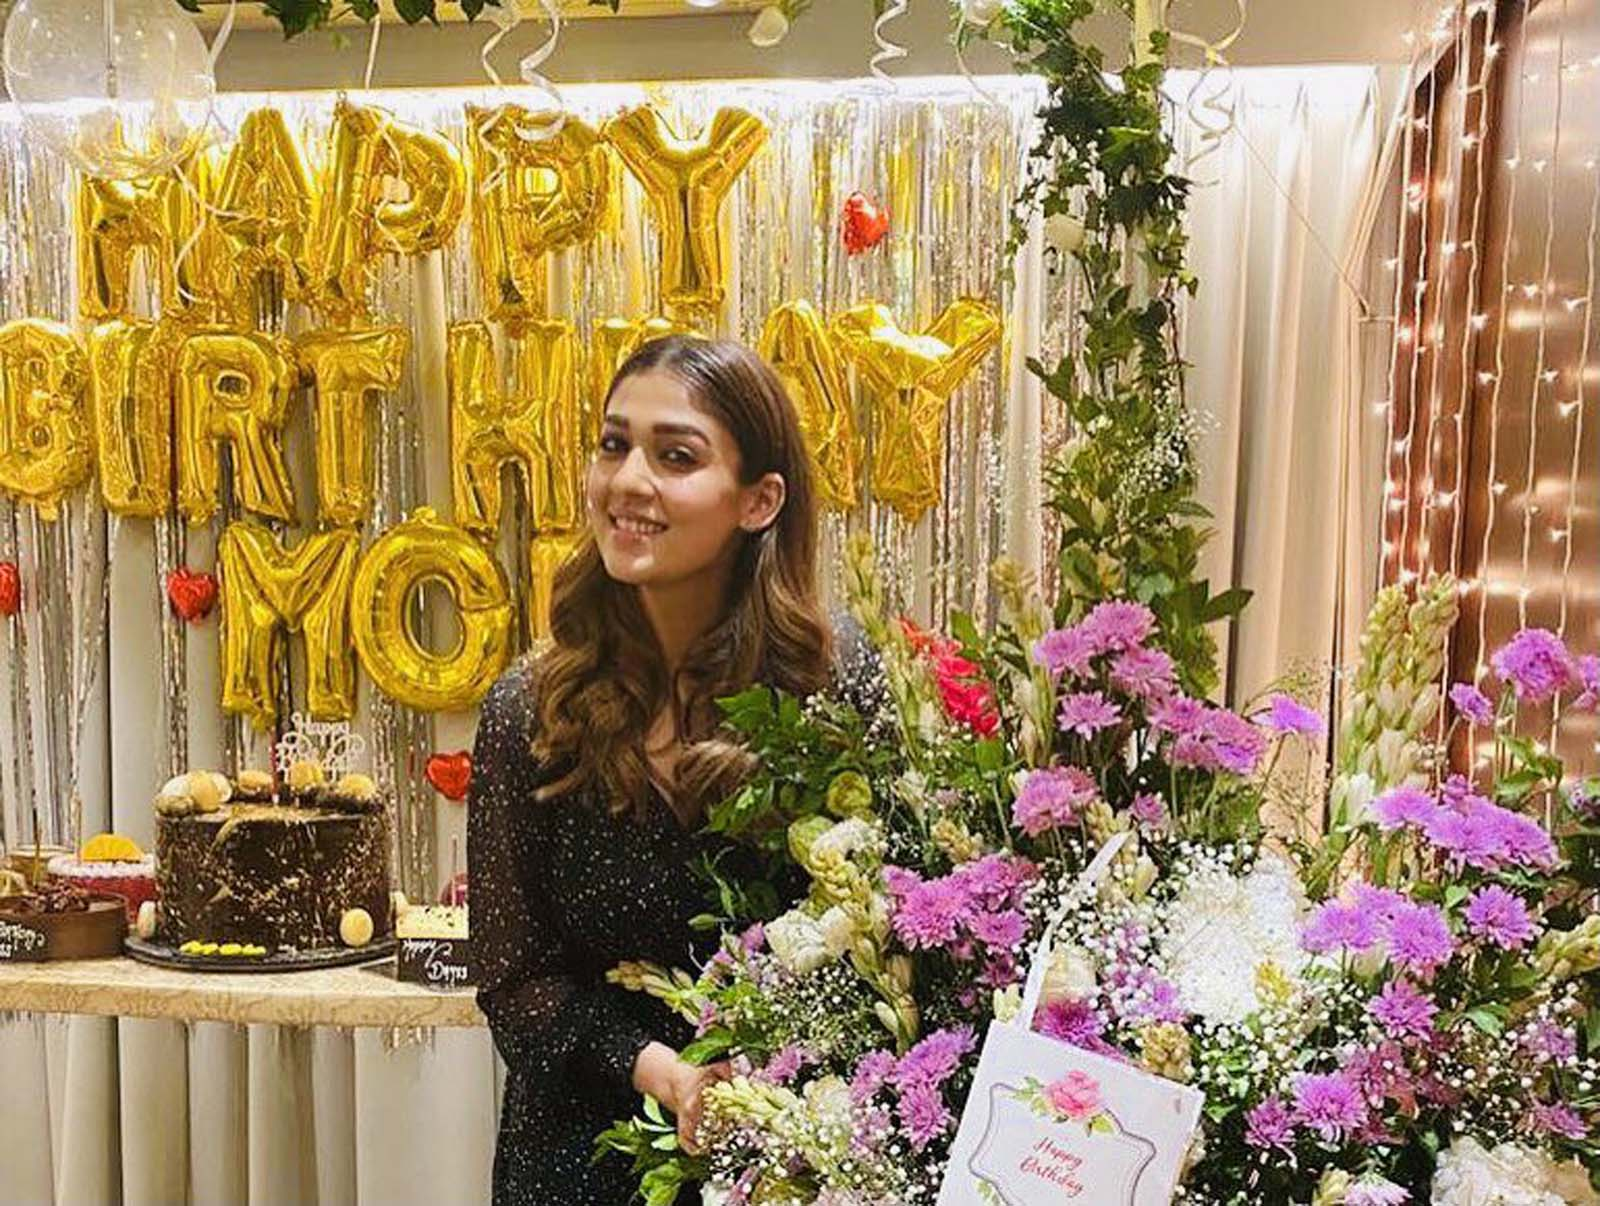 Nayanthara's photos go viral as wishes pour in on social media